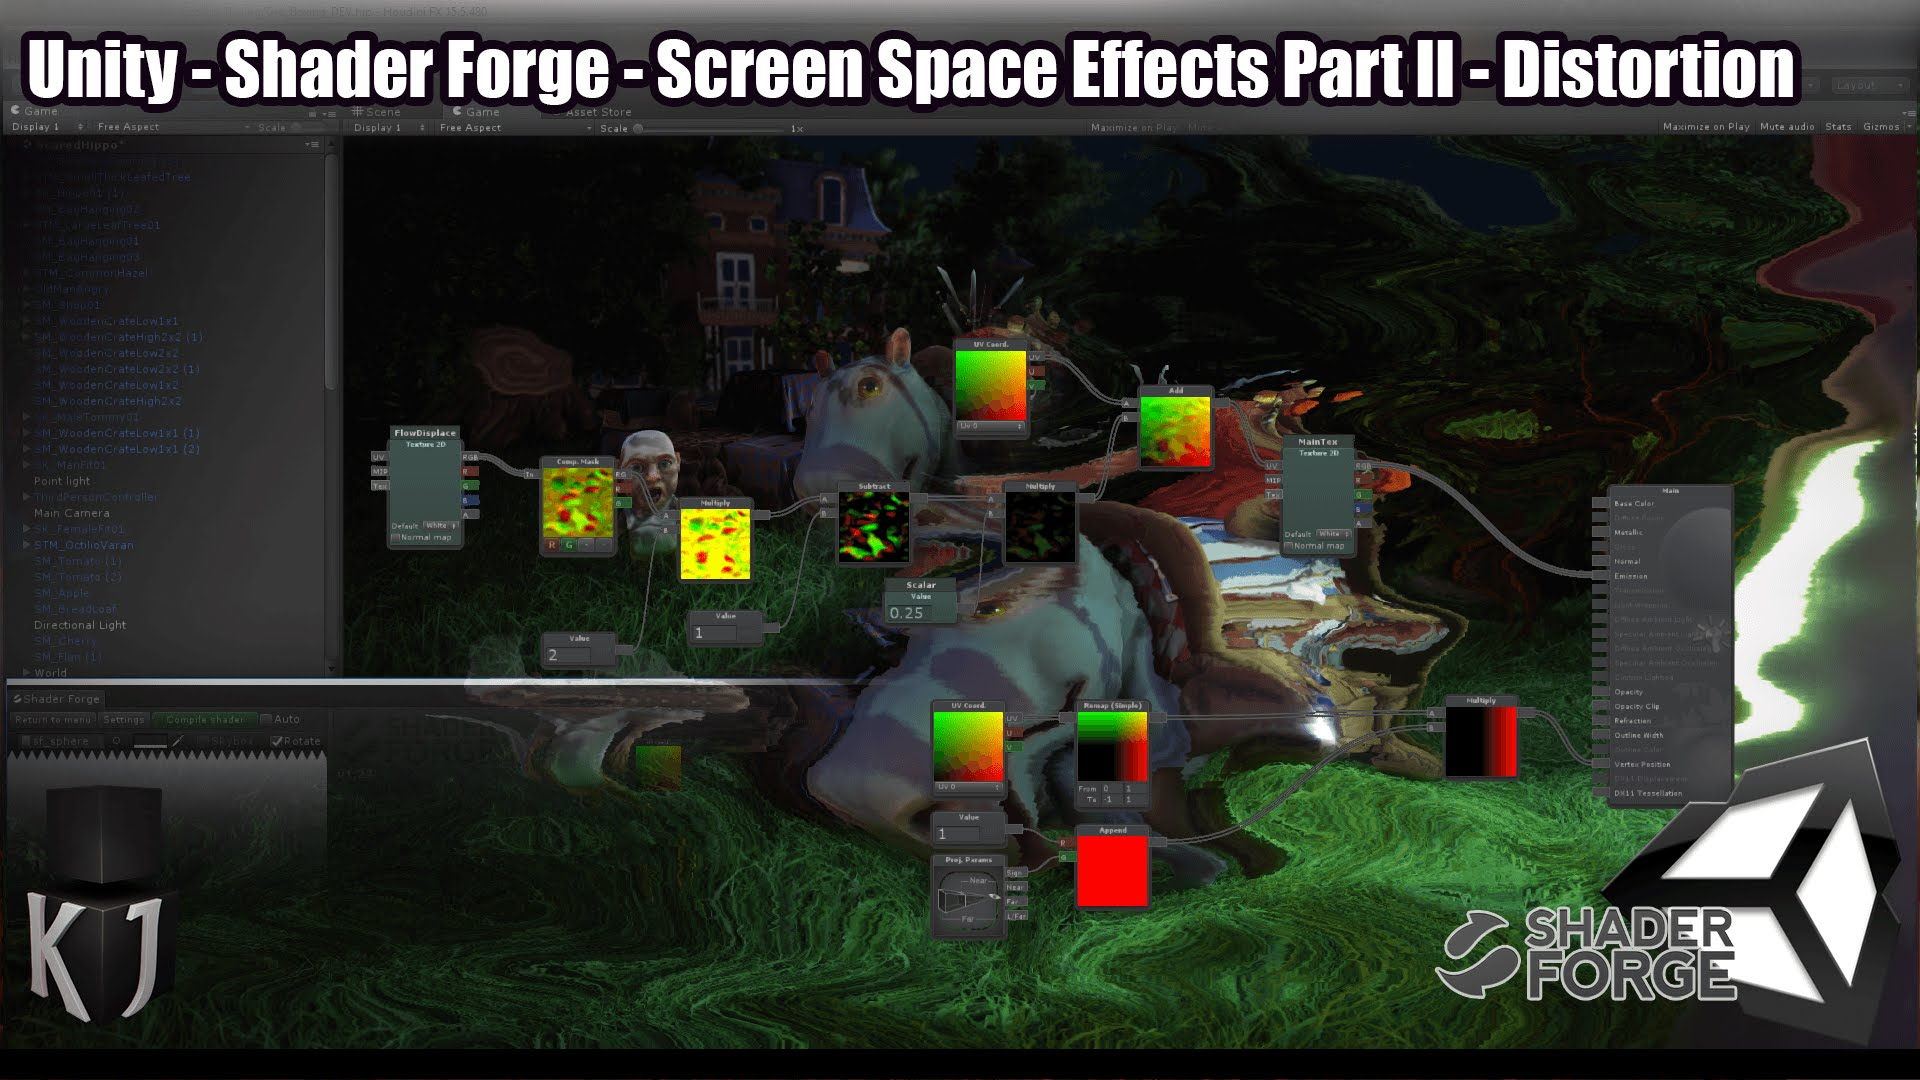 Screen Space Effects in Unity using Shader Forge tutorial